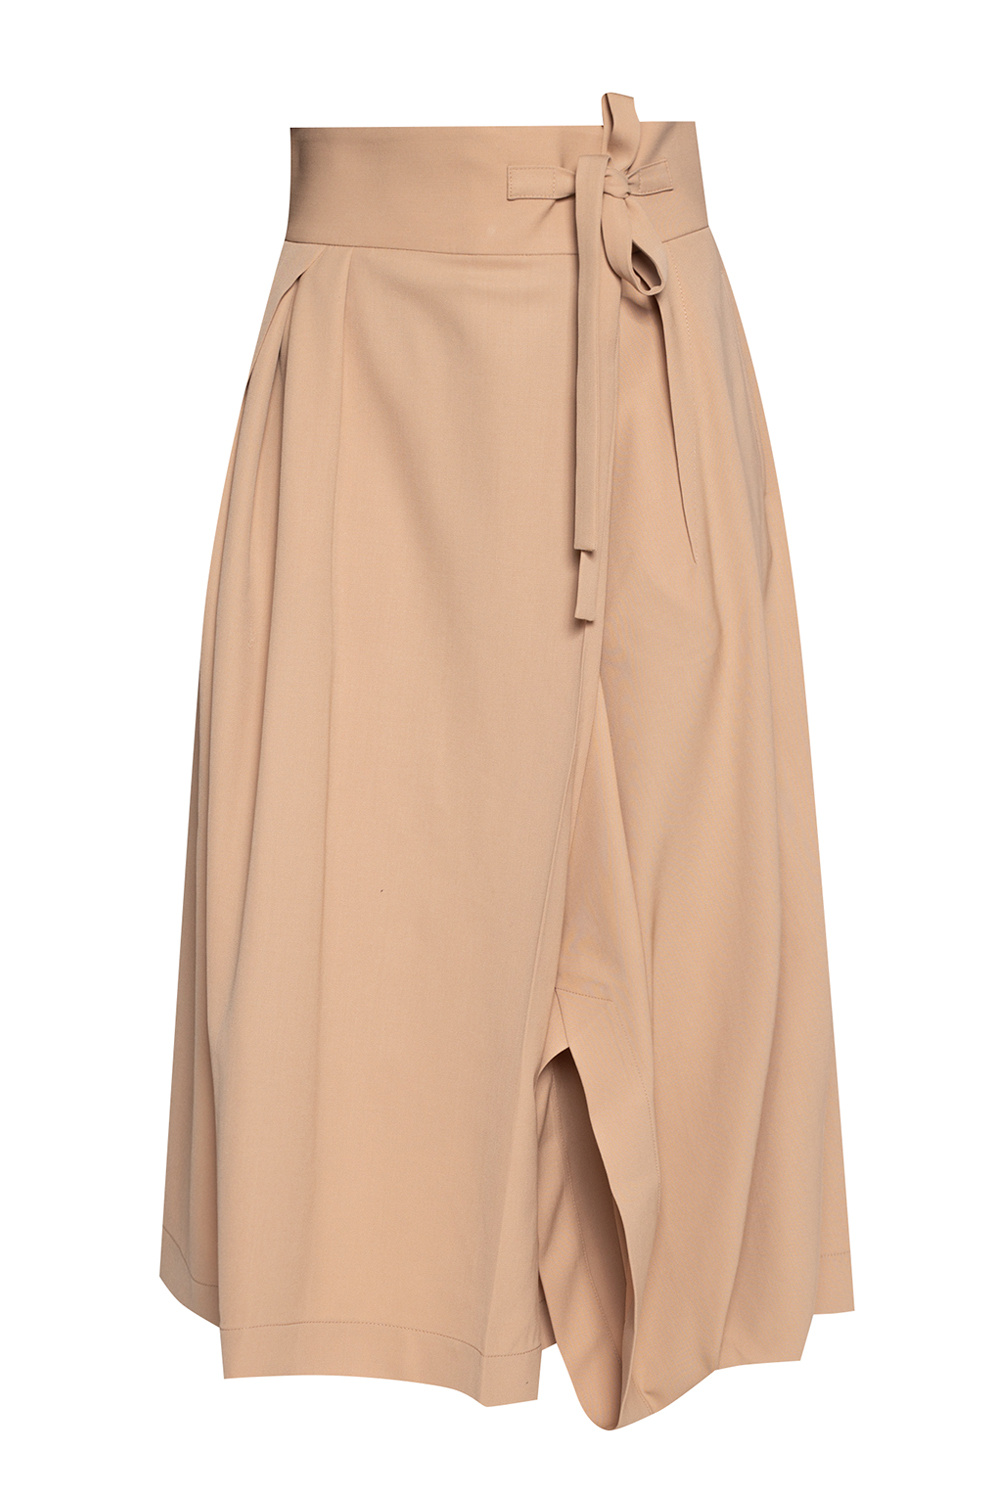 Chloé Asymmetric trousers with gathers